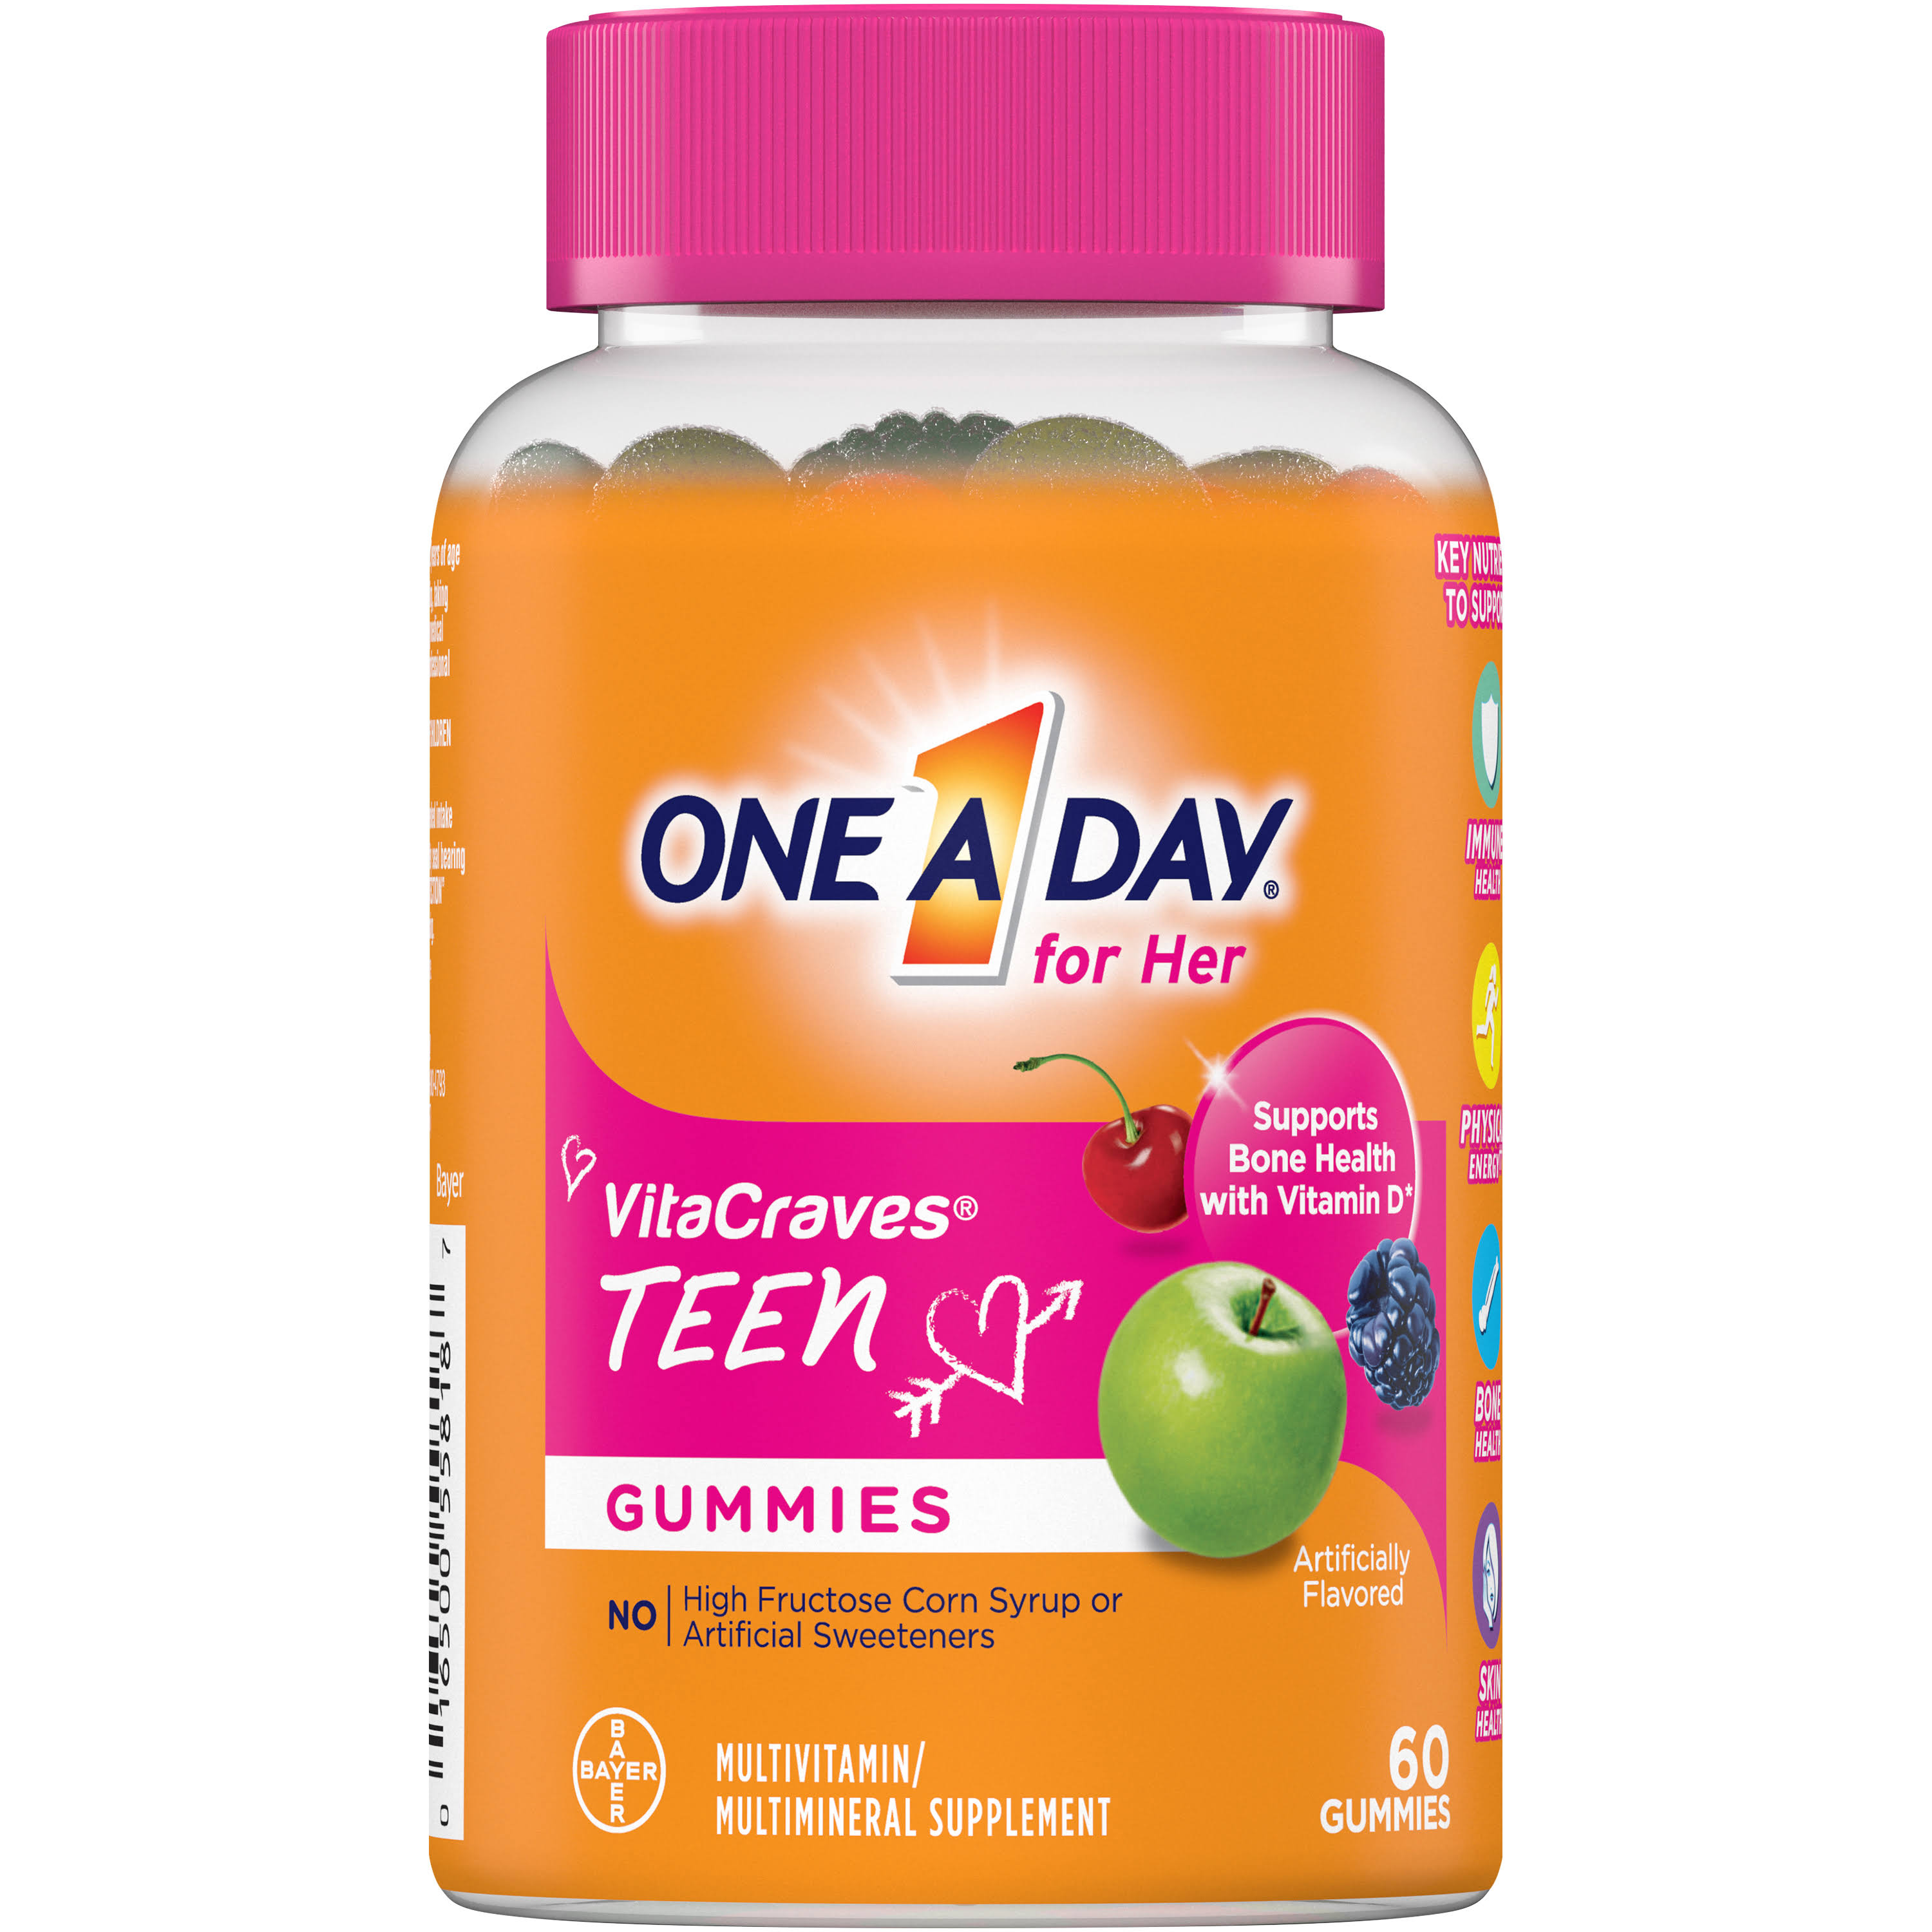 One a Day Teen for Her Vita Craves Multivitamin and Mineral Supplement Gummies - 60ct